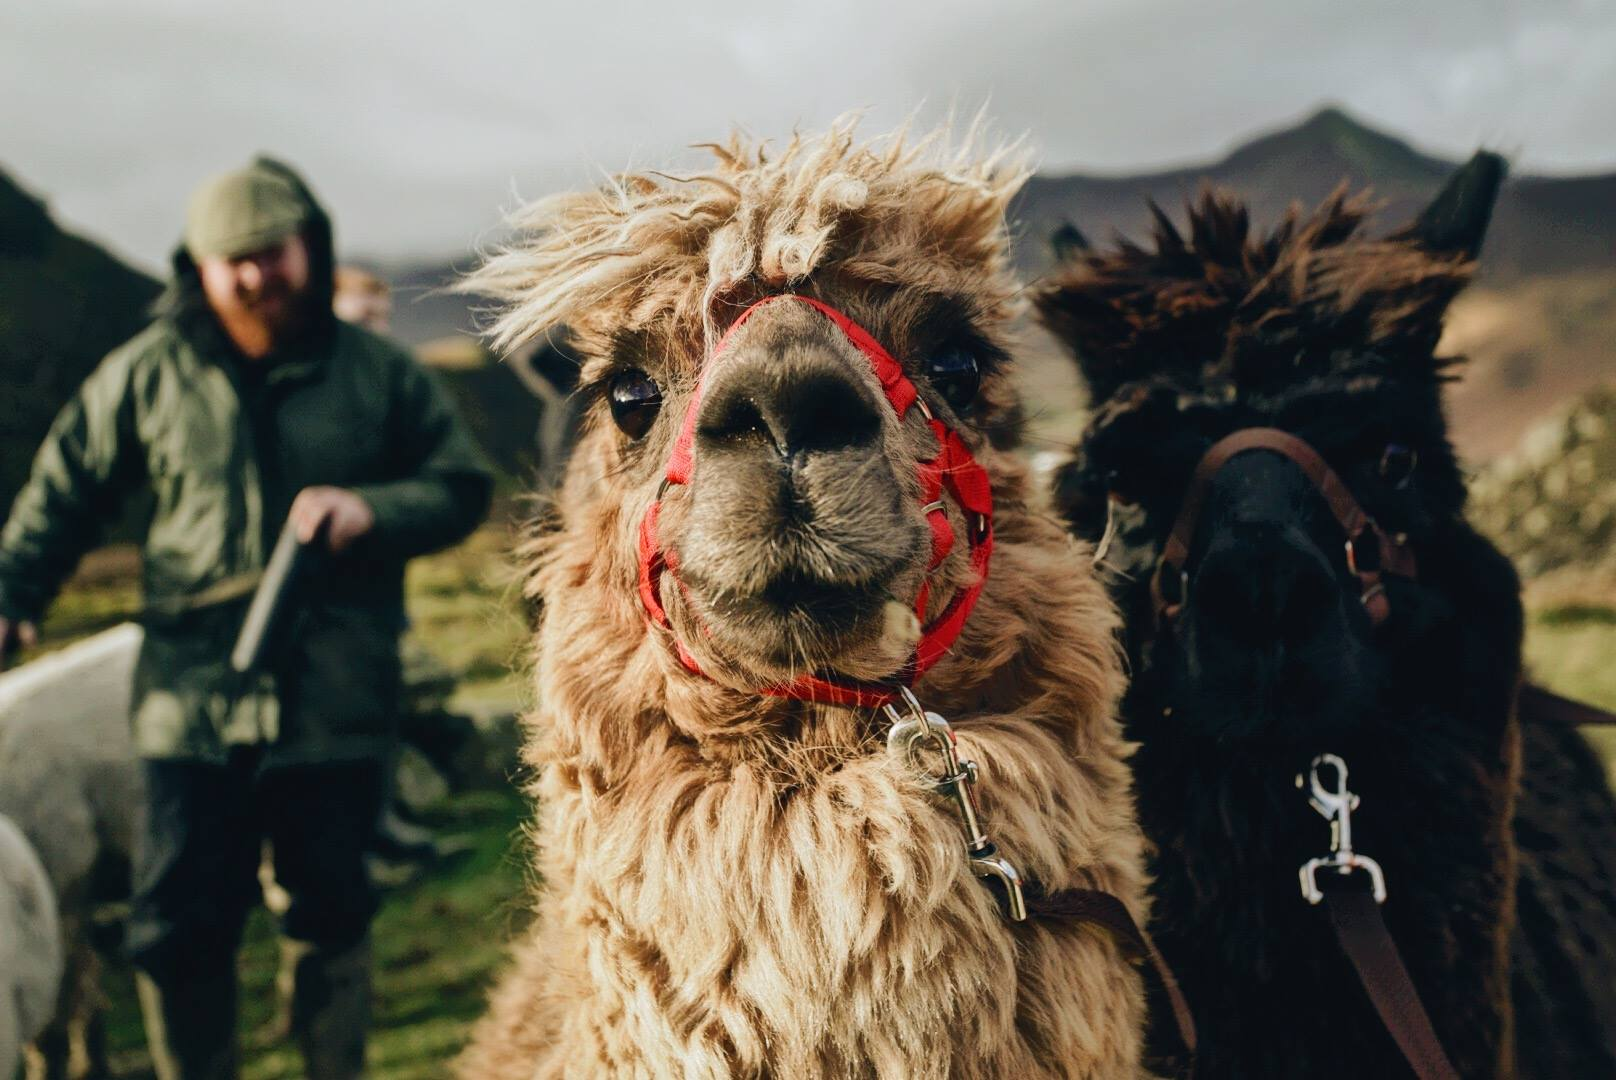 Rescue Alpacas Start Animal Therapy For At Risk Kids 27355601 1130511467052573 806655913079701321 o 1